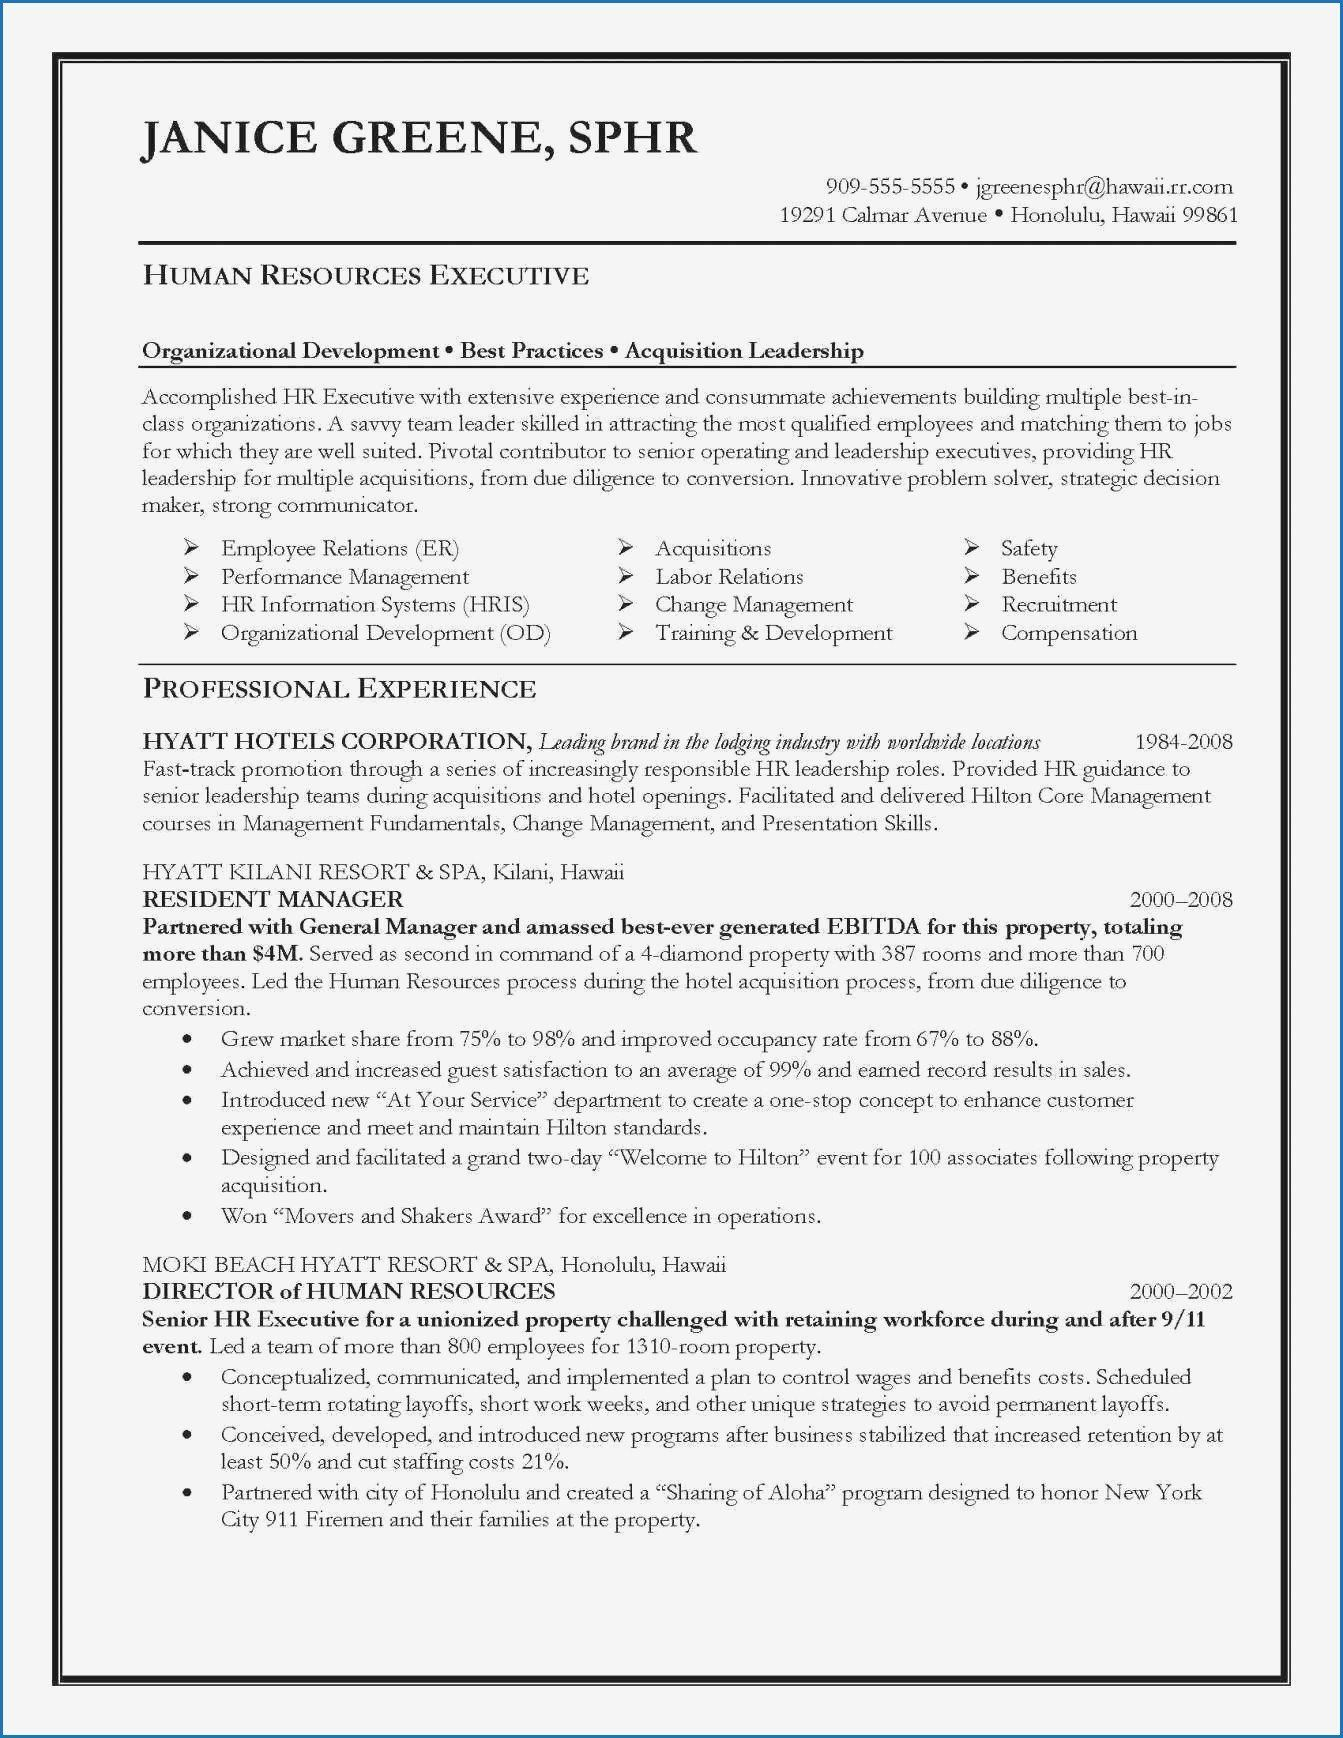 Best Project Manager Resume Best Of Sample Project Manager Resume Professional Best Project Human Resources Resume Resume Objective Examples Resume Examples